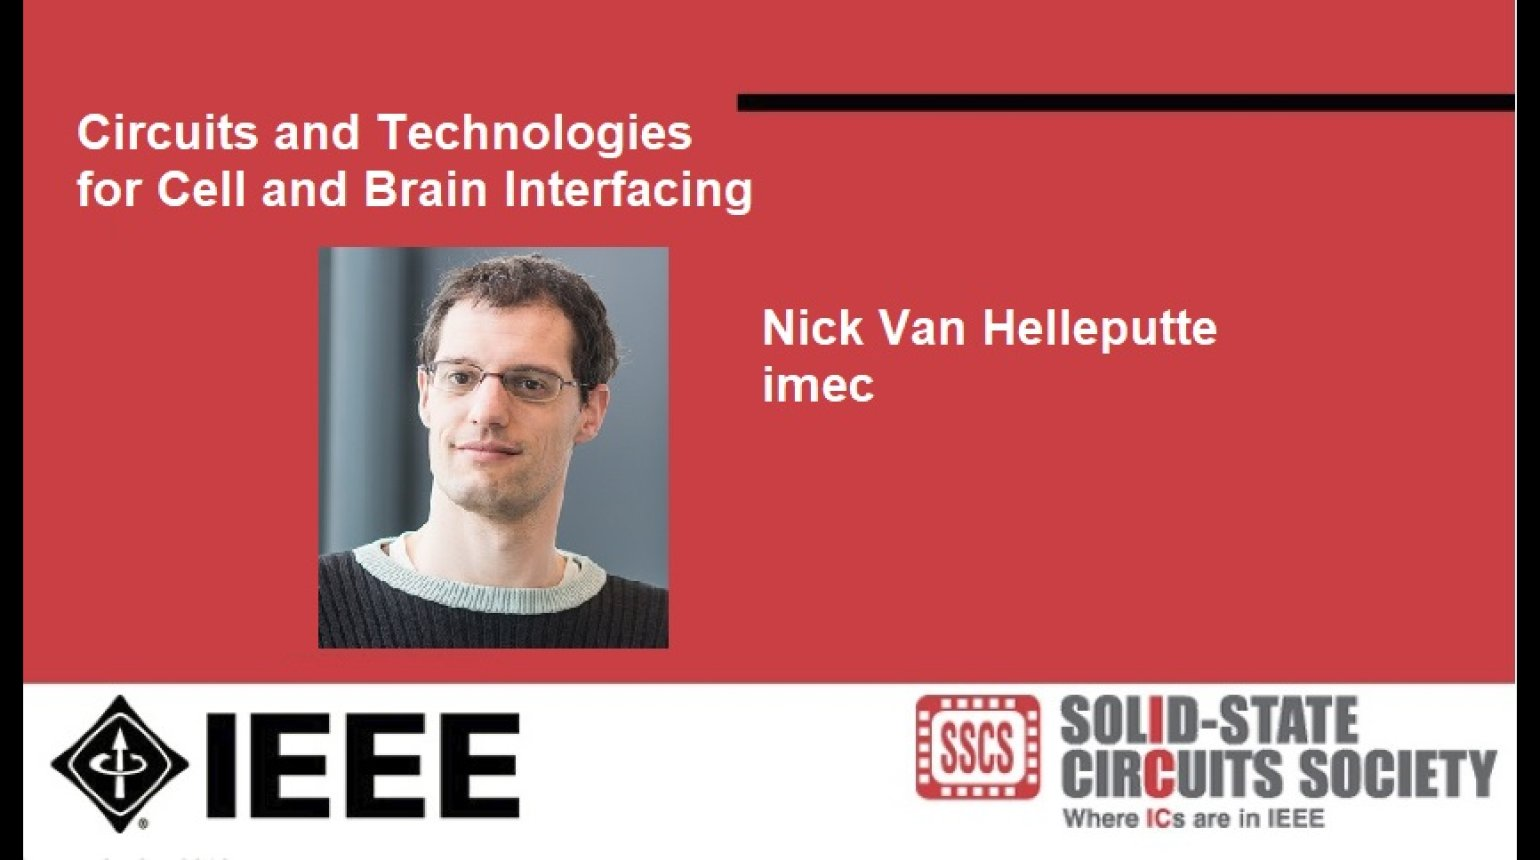 Circuits and Technologies for Cell and Brain Interfacing Video